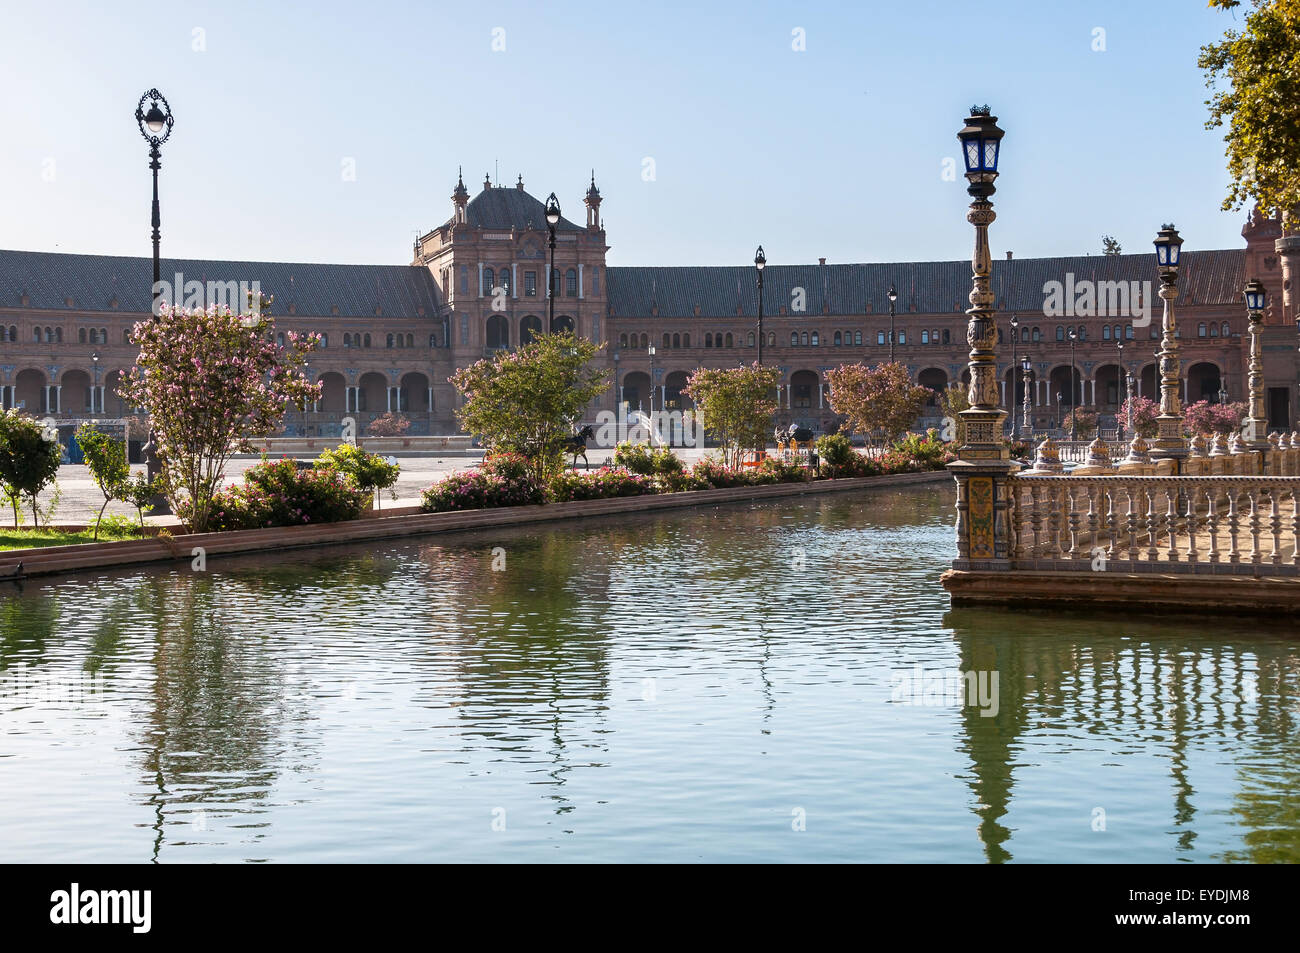 Morning view of the Plaza de Espana in Seville. It is a landmark example of the Renaissance Revival style in Spanish - Stock Image